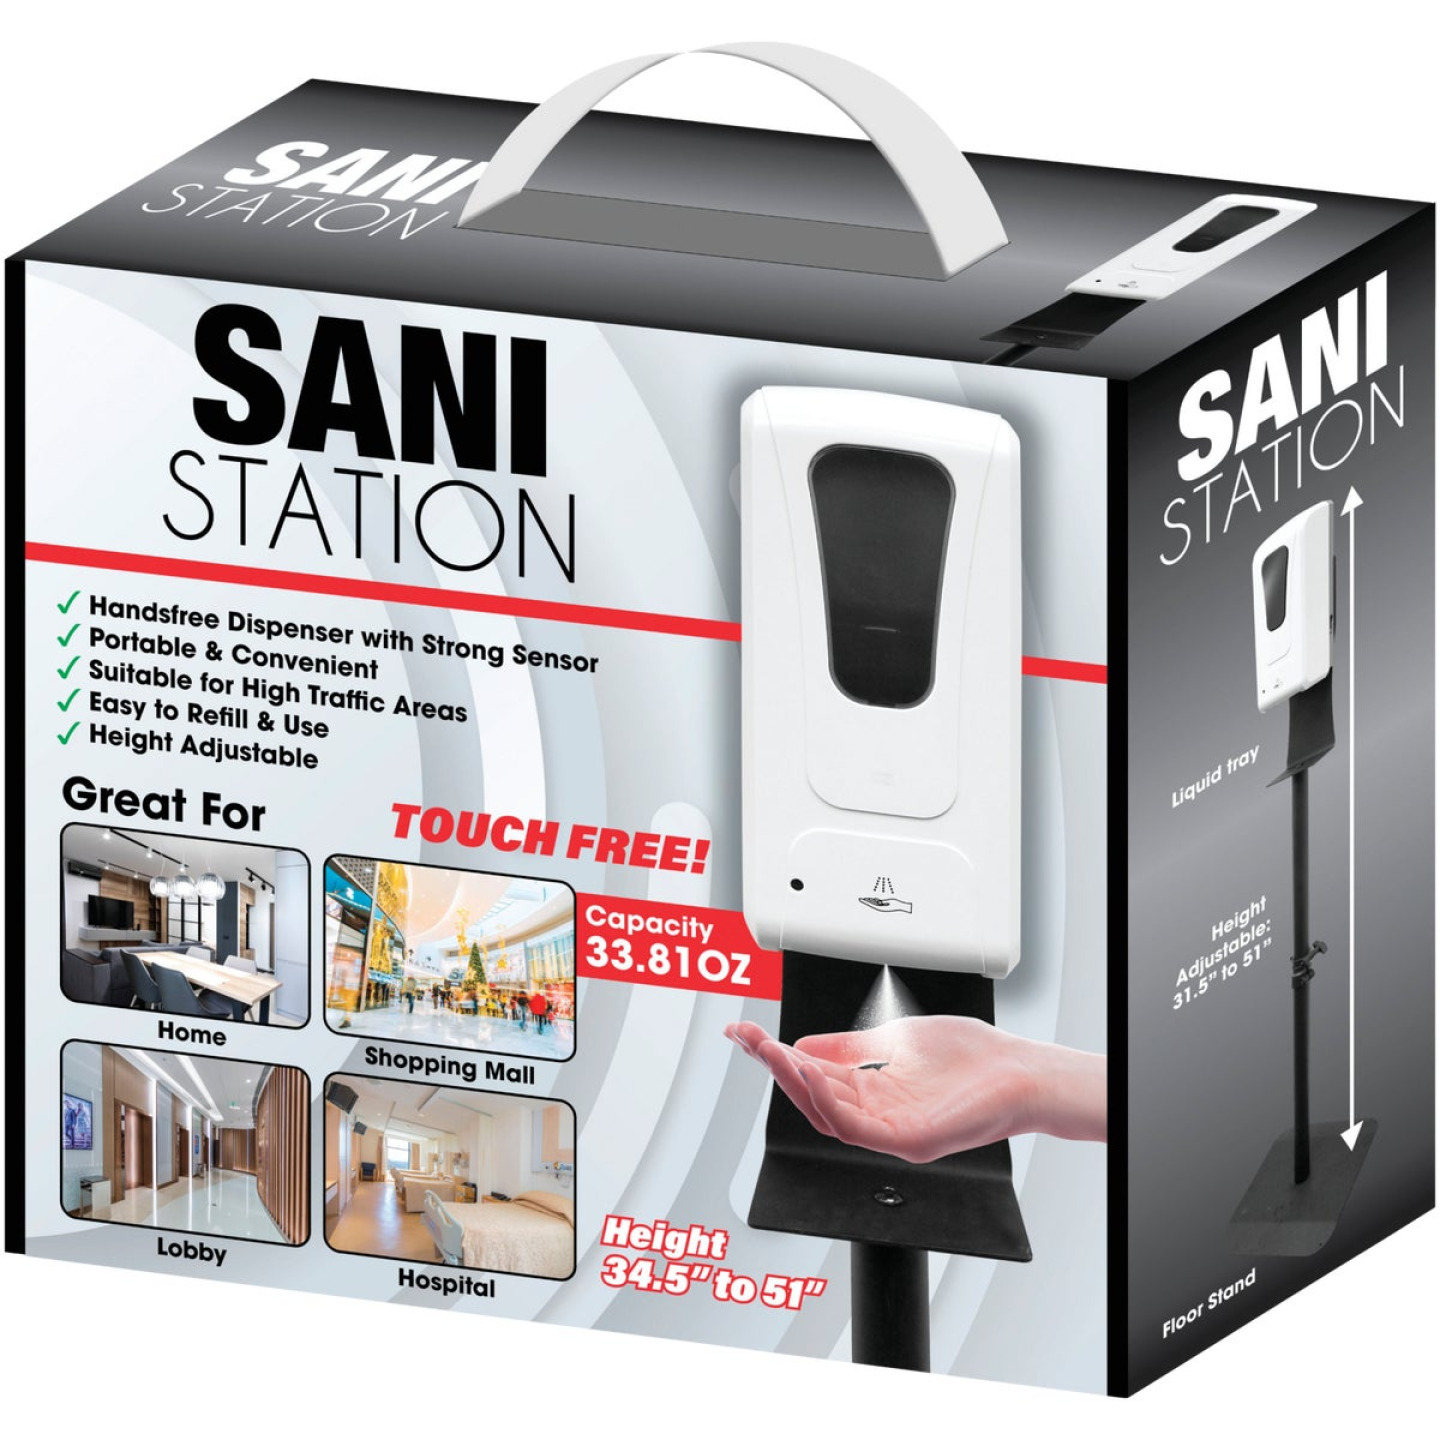 Sani Maxx Automatic Sanitizer Dispenser with Stand Image 2